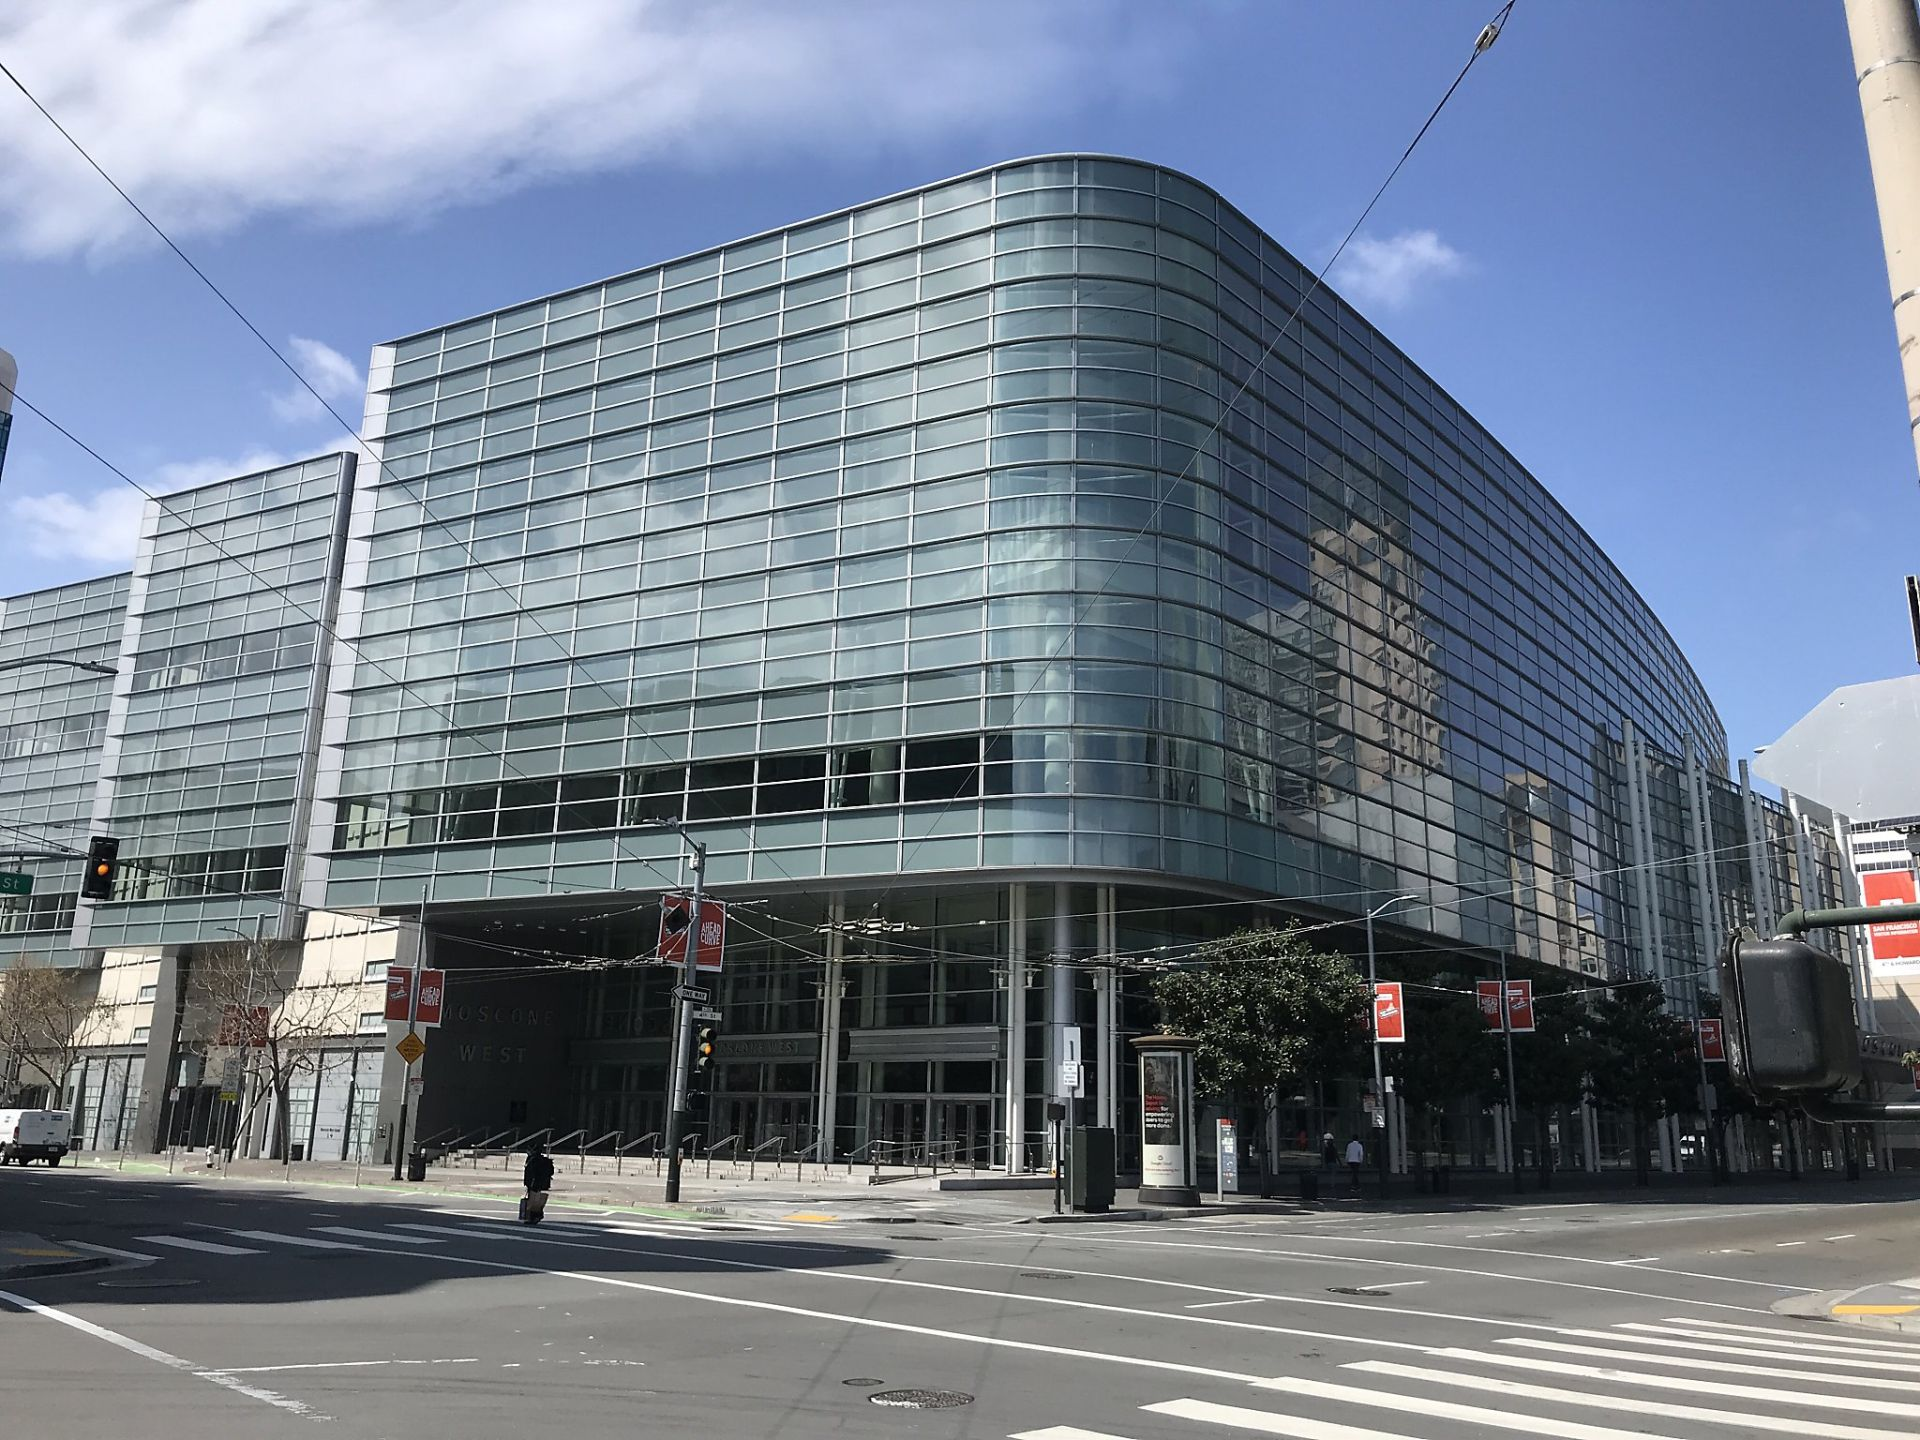 Moscone West, part of the Moscone Center and host of the annual Game Developers Conference, has been converted to a COVID-19 shelter for the homeless.